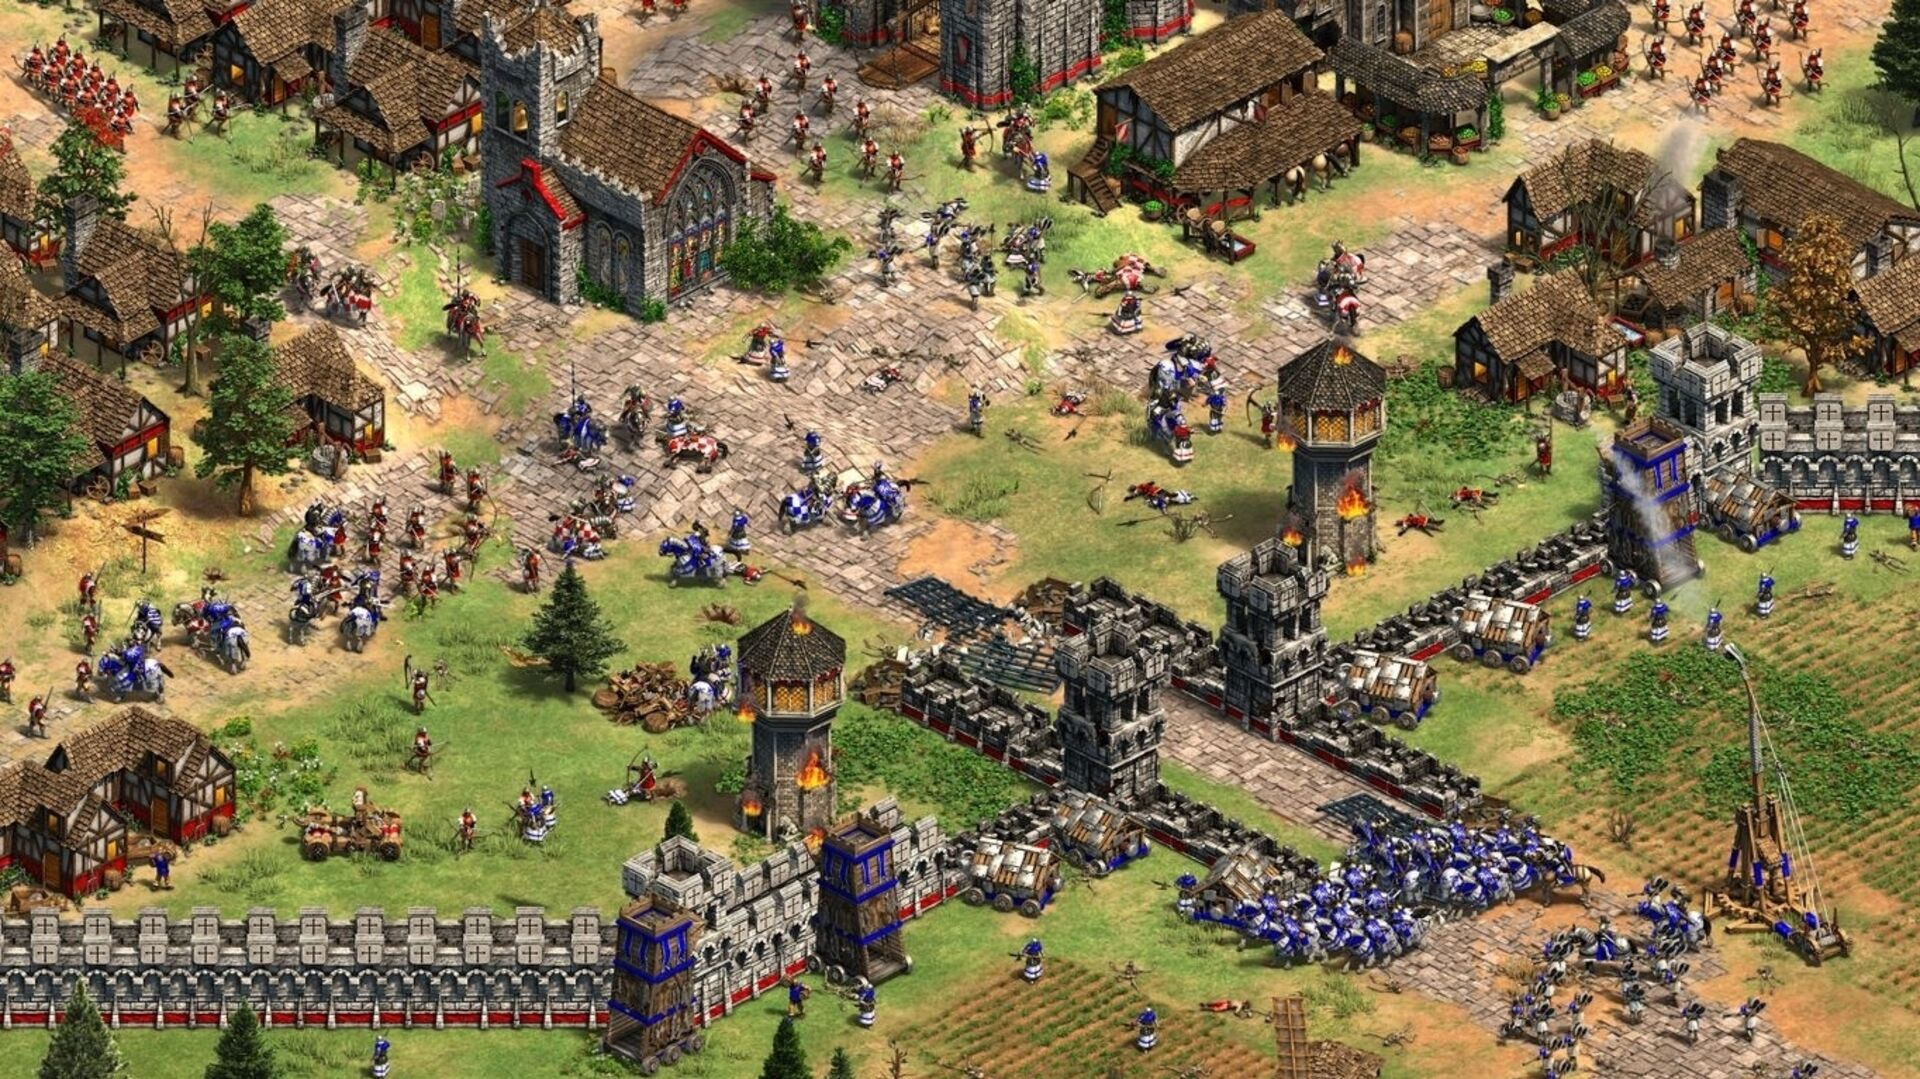 Age of Empires 2: Definitive Edition looks great, but still